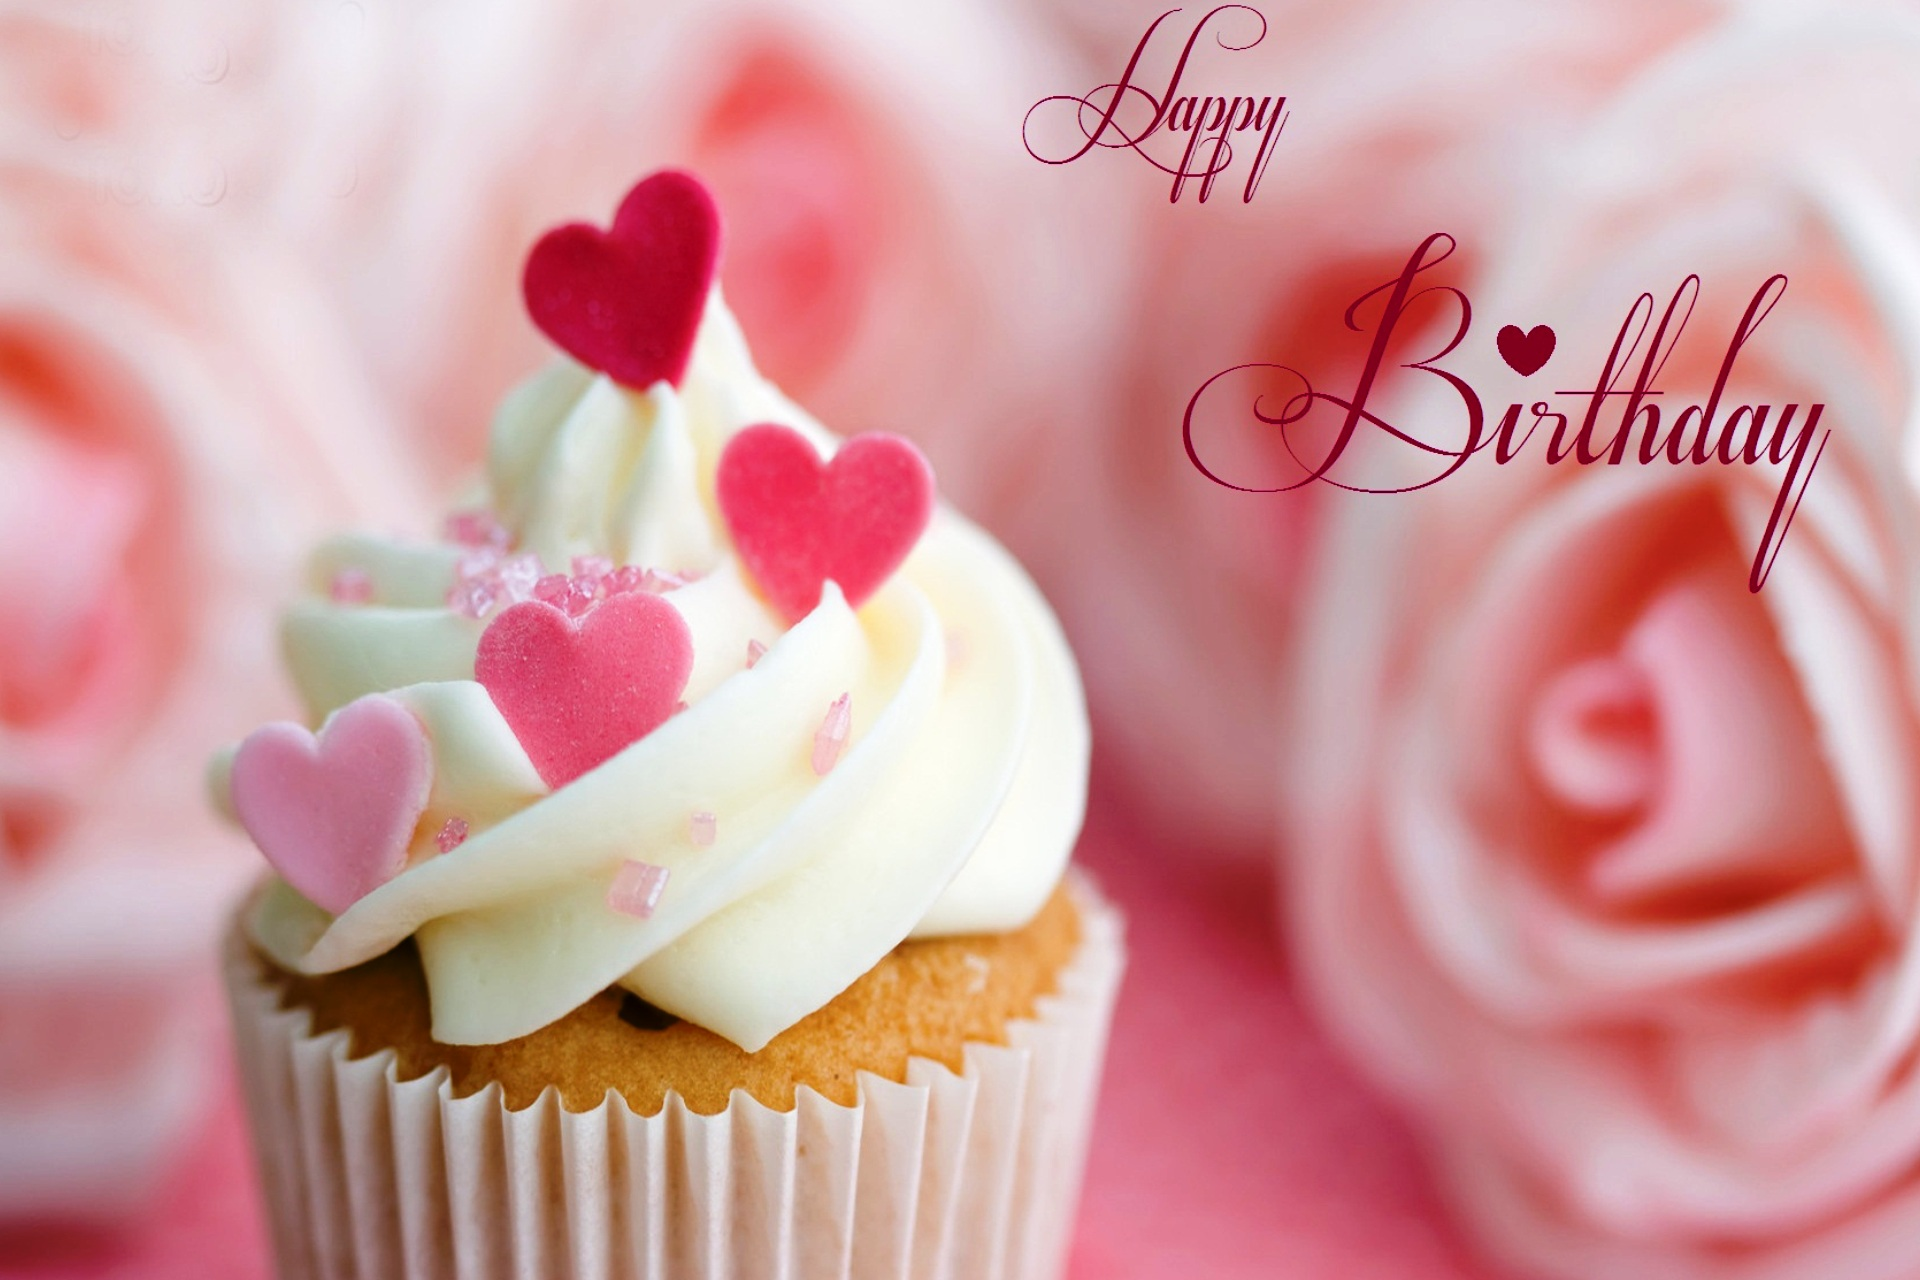 happy birthday hd images download ; Cute-Happy-Birthday-HD-Pictures